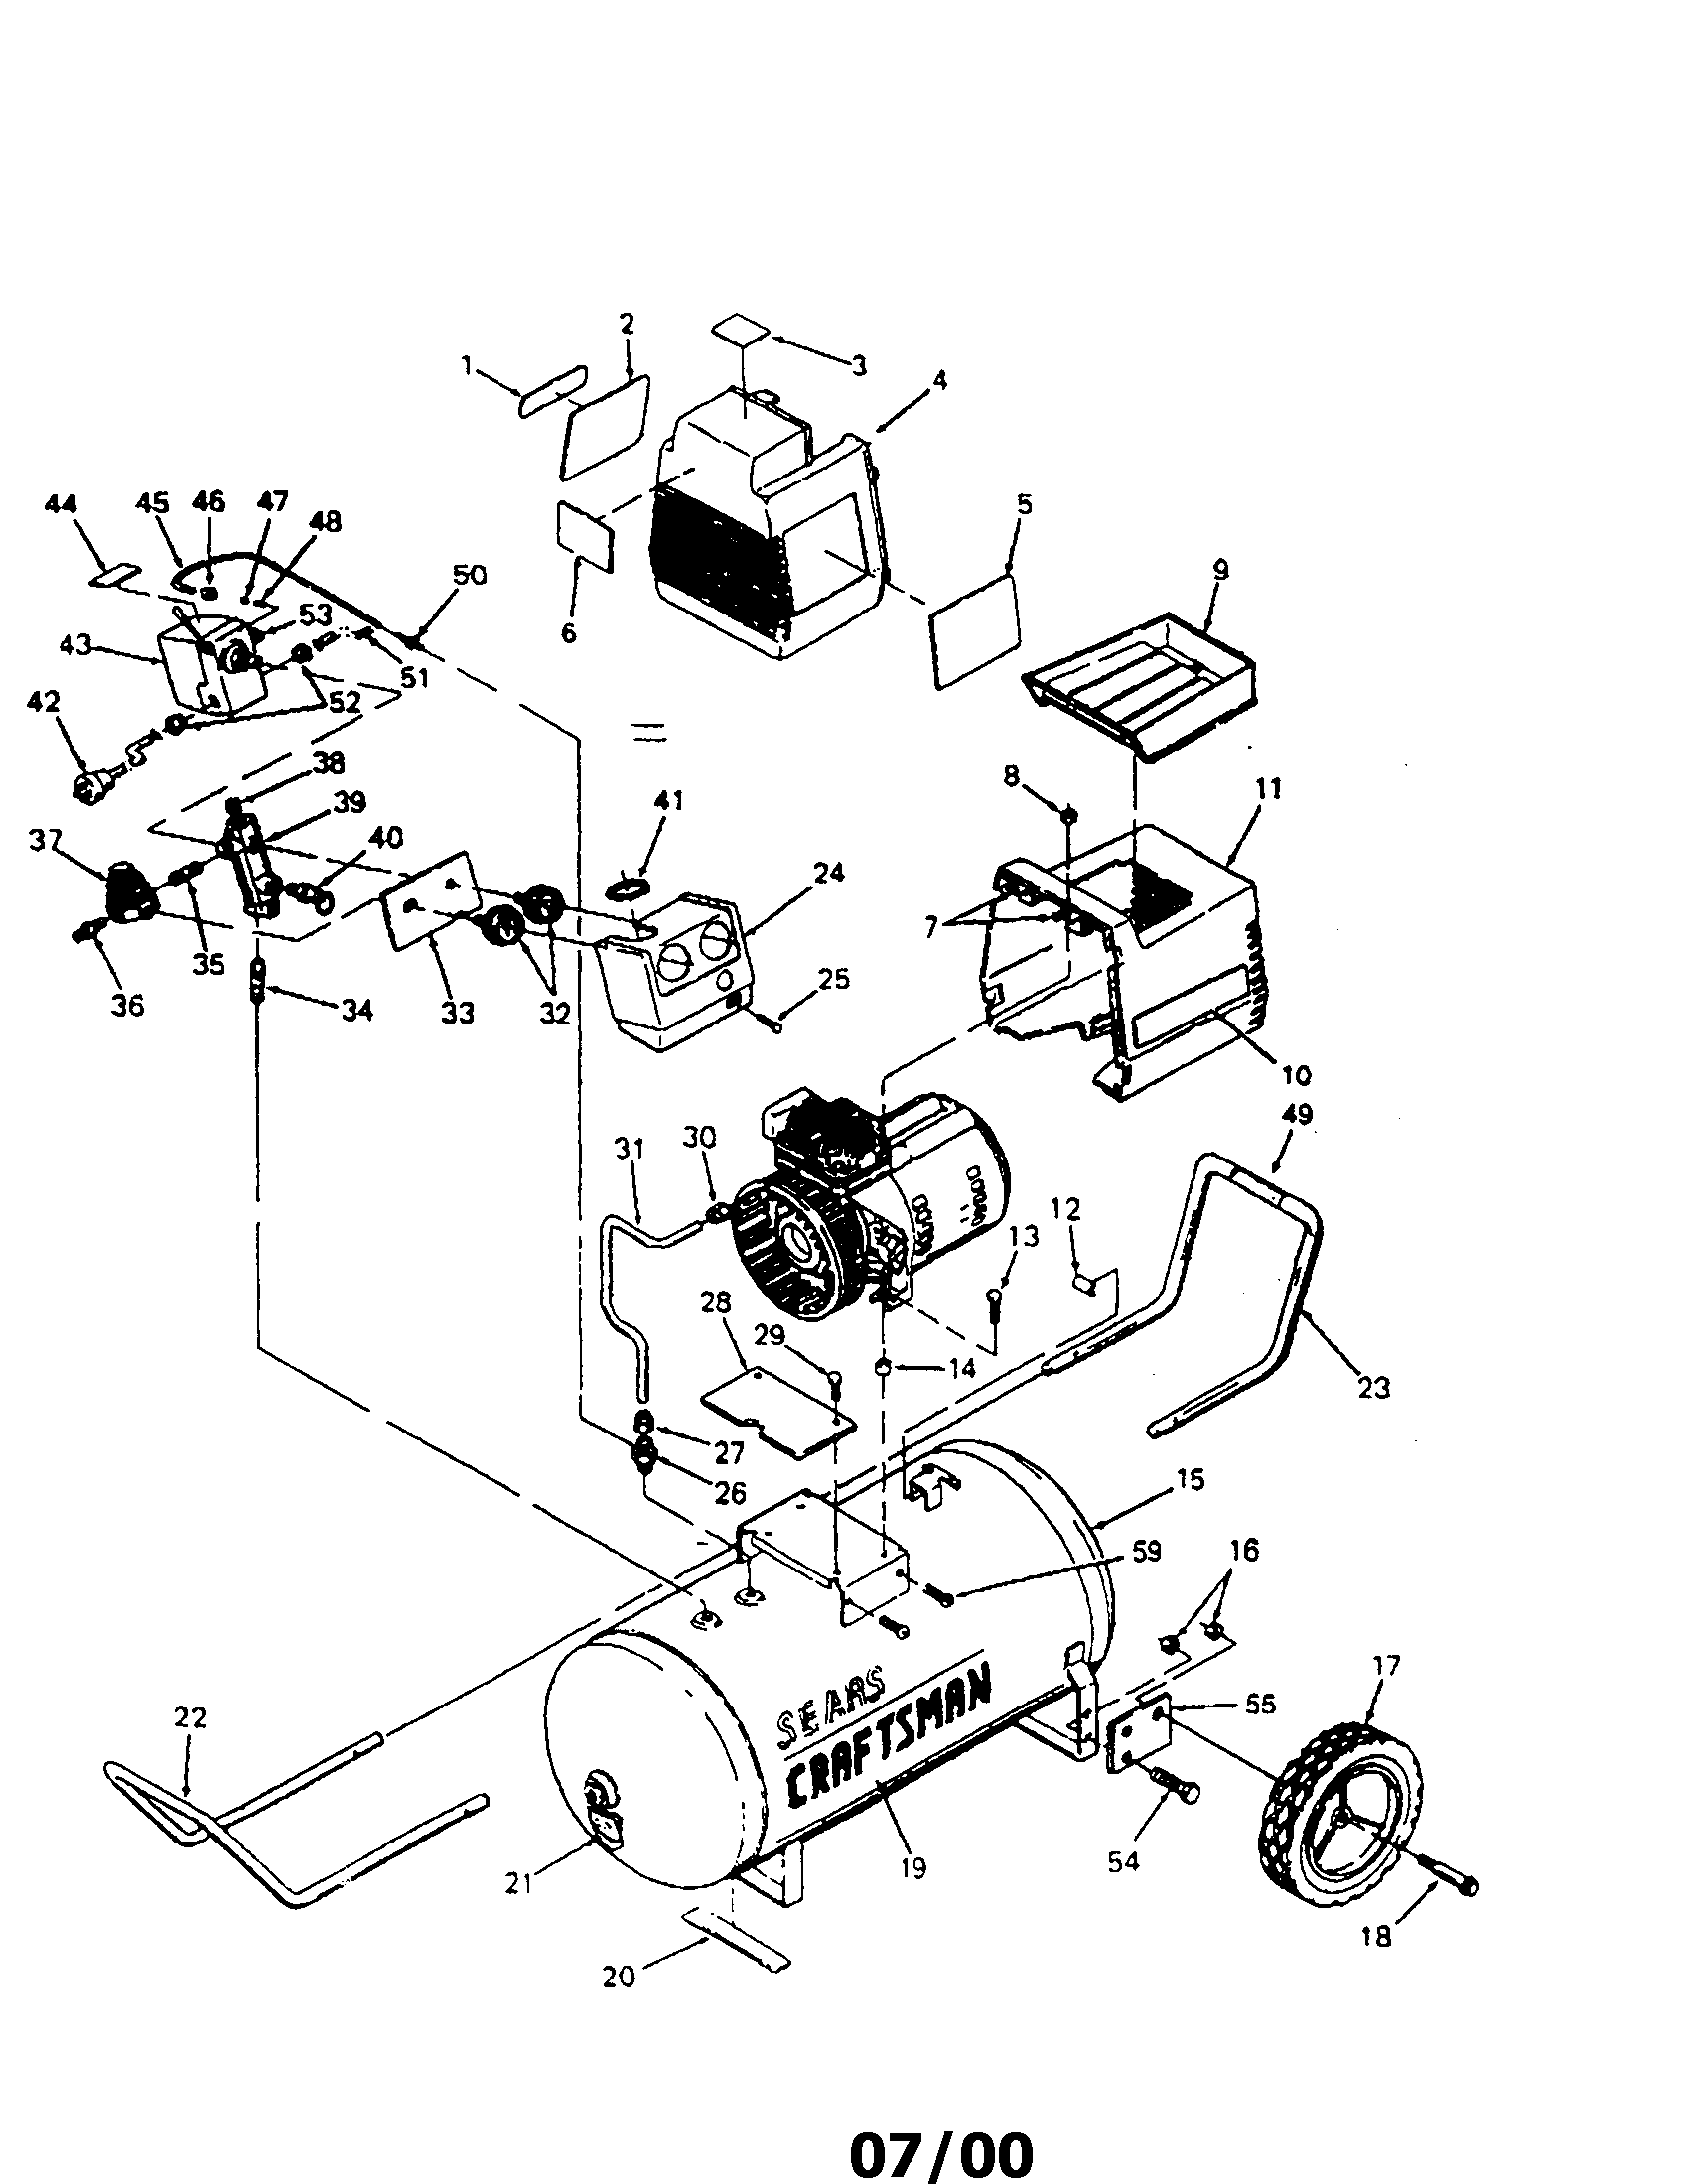 919.153231_craftsman_compressor_parts 919 153231 sears craftsman air compressor parts abac air compressor wiring diagram at webbmarketing.co